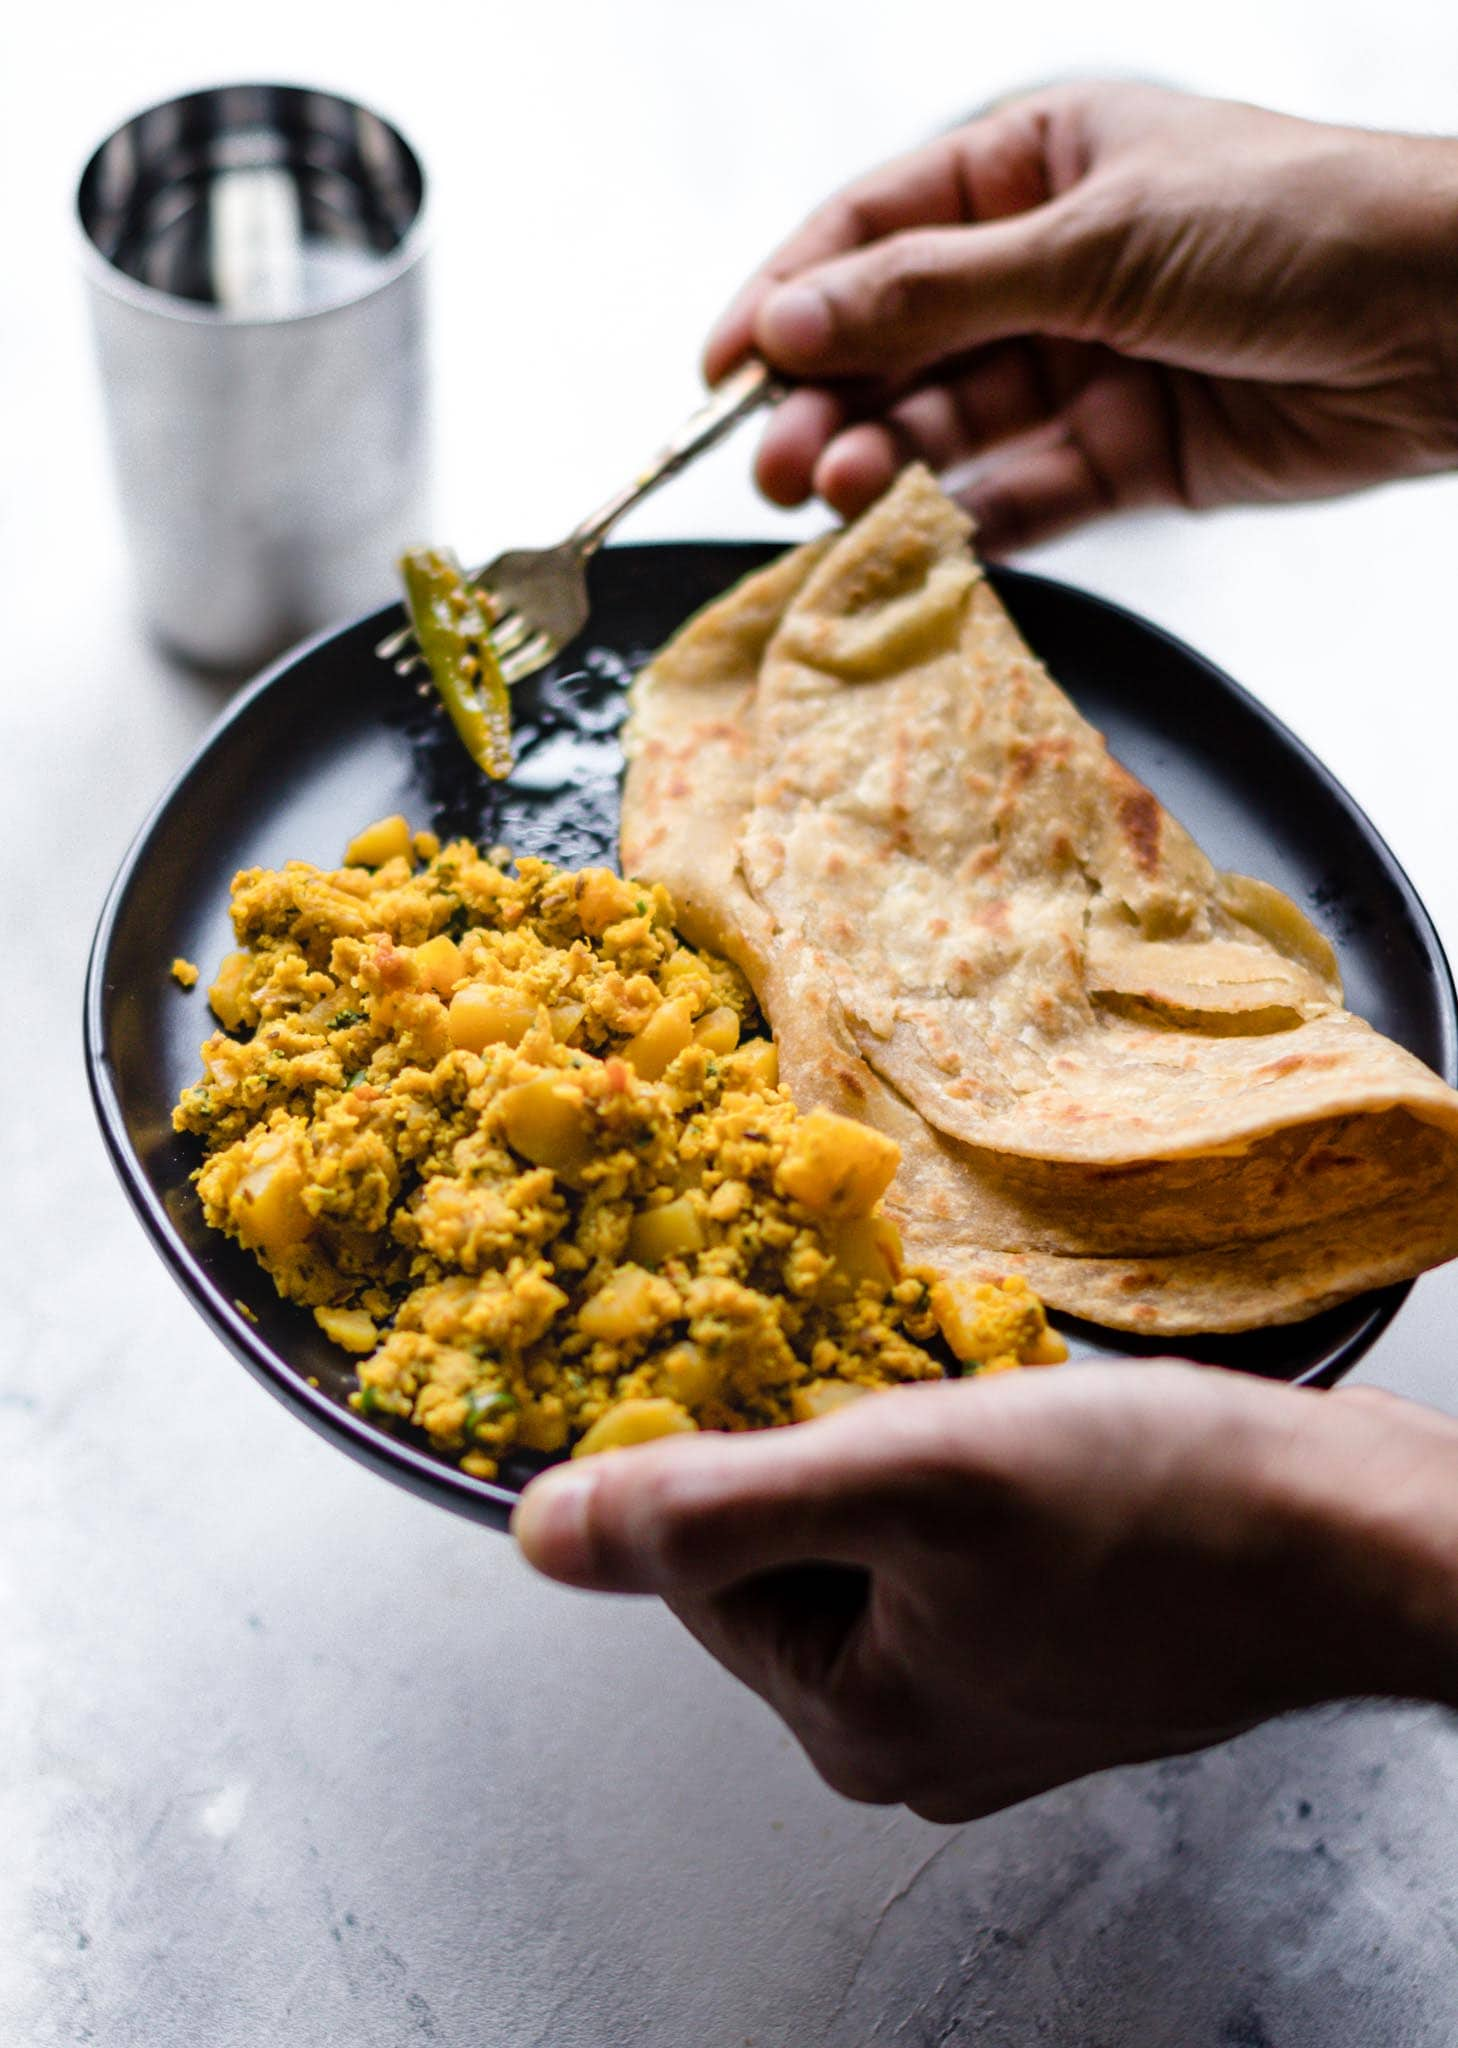 Holding a fork and a plate of scrambled egg and potatoes with paratha